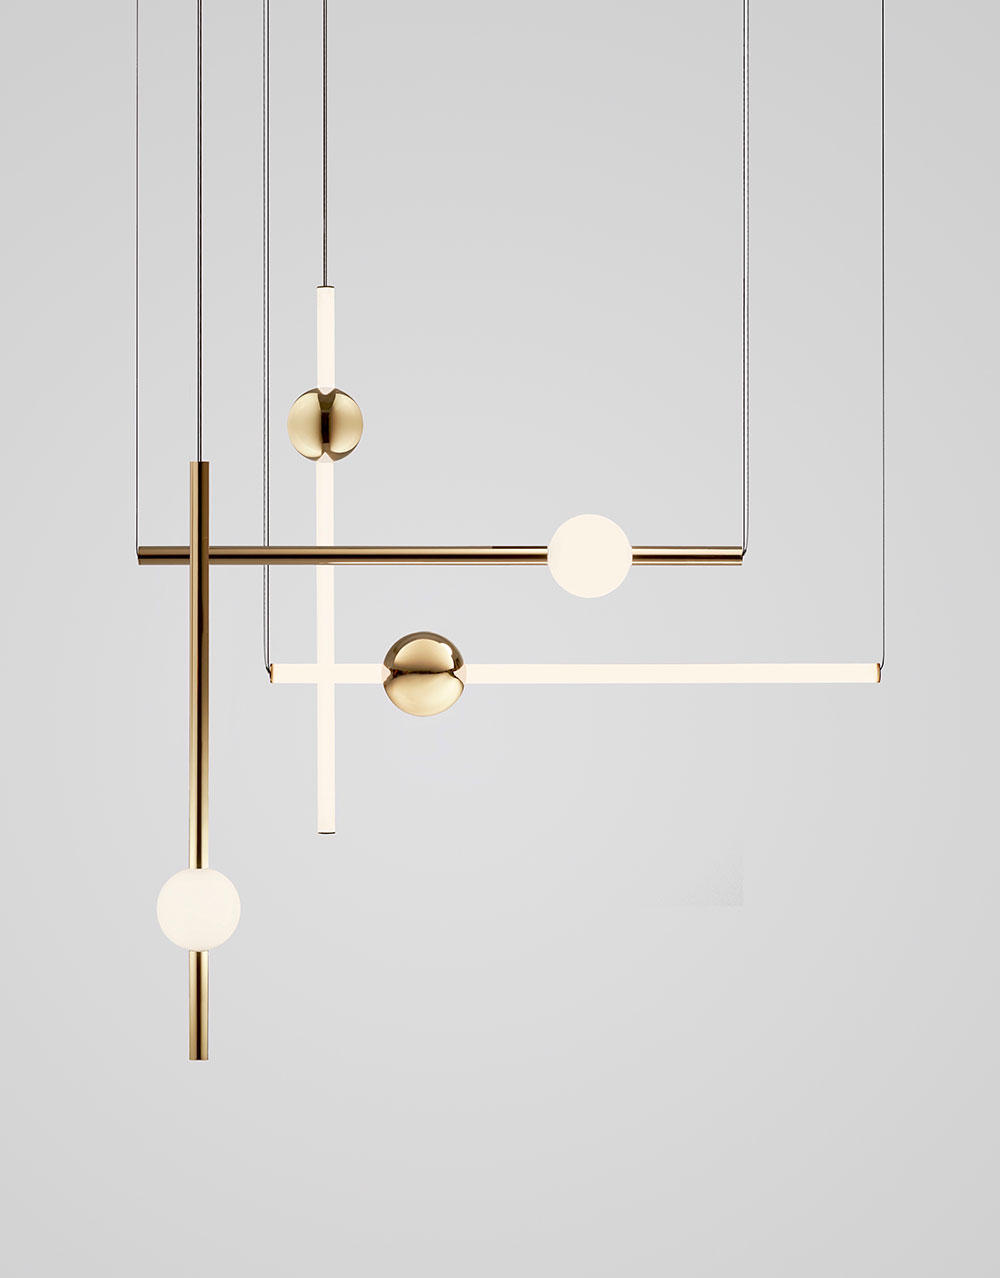 Lee Broom Launches Celestial Lighting At Salone Del Mobile